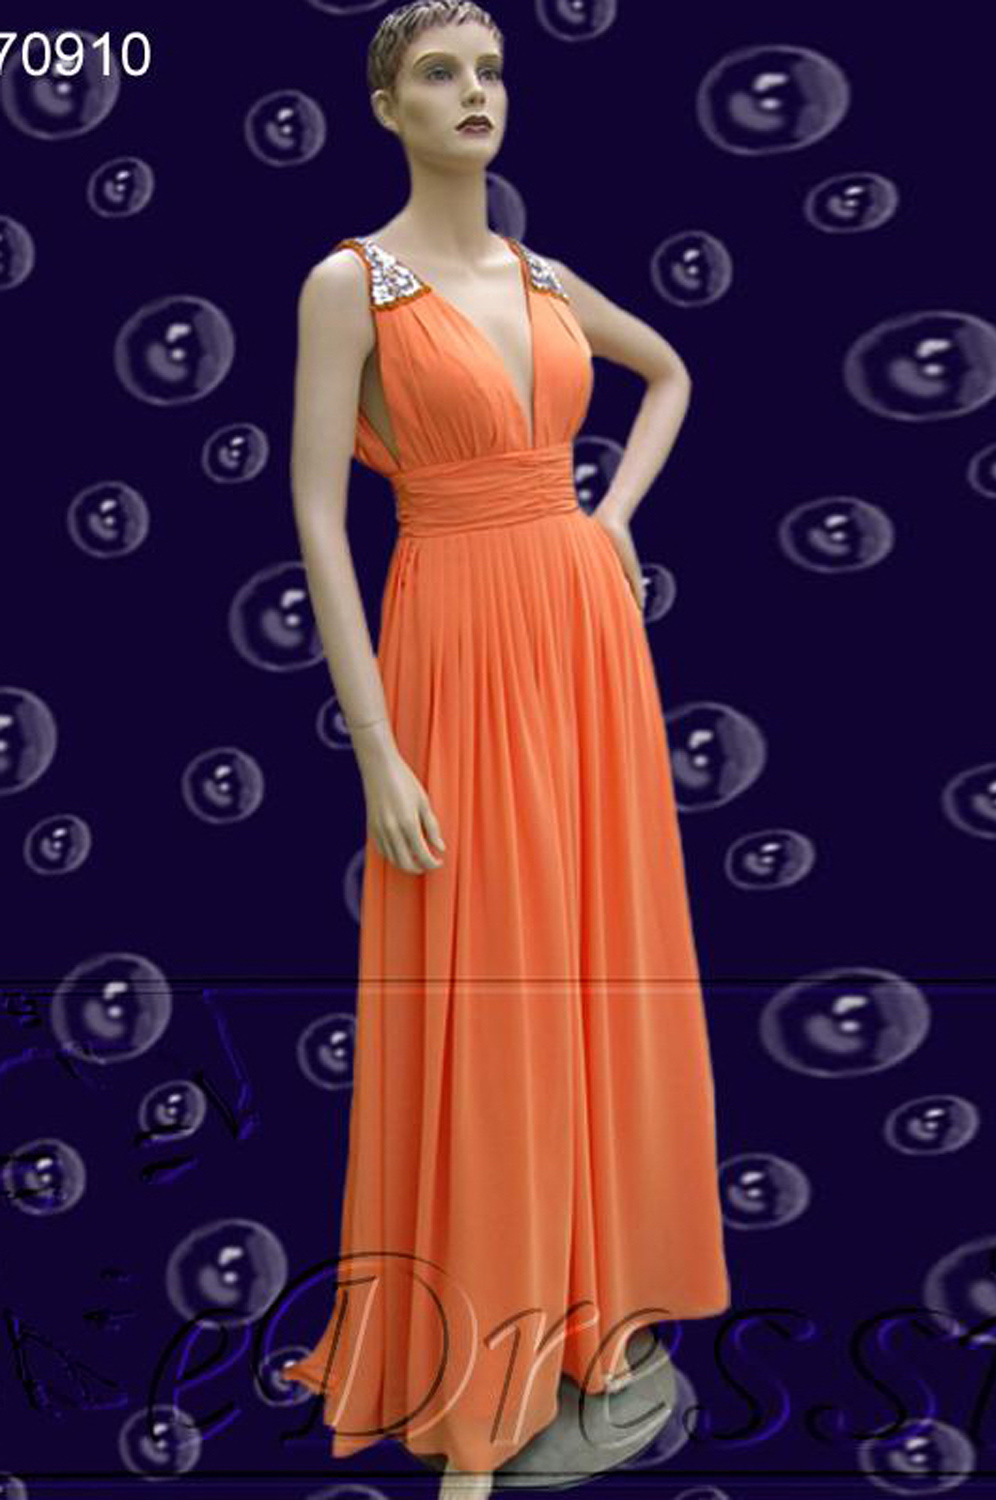 ON SALE ! eDressit Celebrity Evening Dress (00770910)